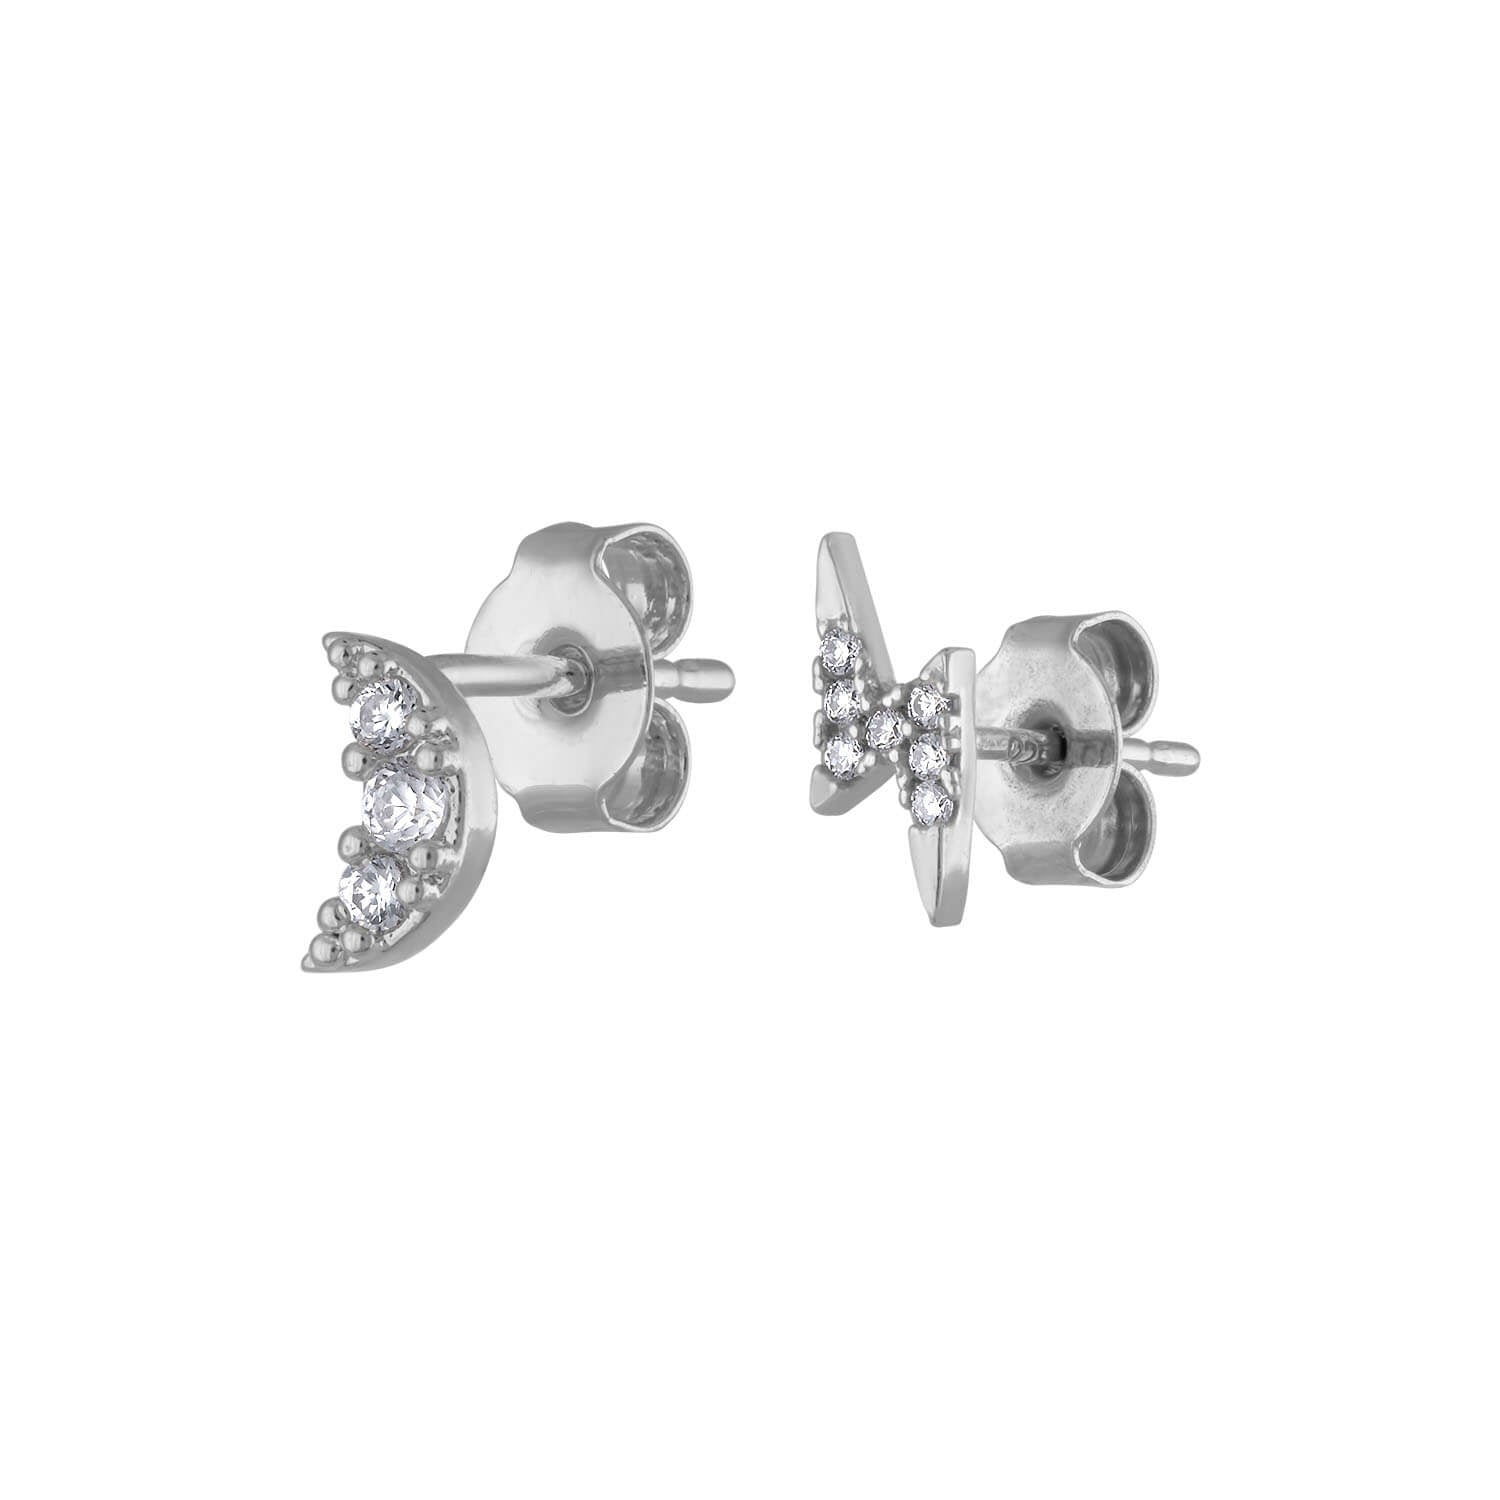 Pave Moon and Lightning Studs in Sterling Silver at Maison Miru Jewelry @maisonmiru